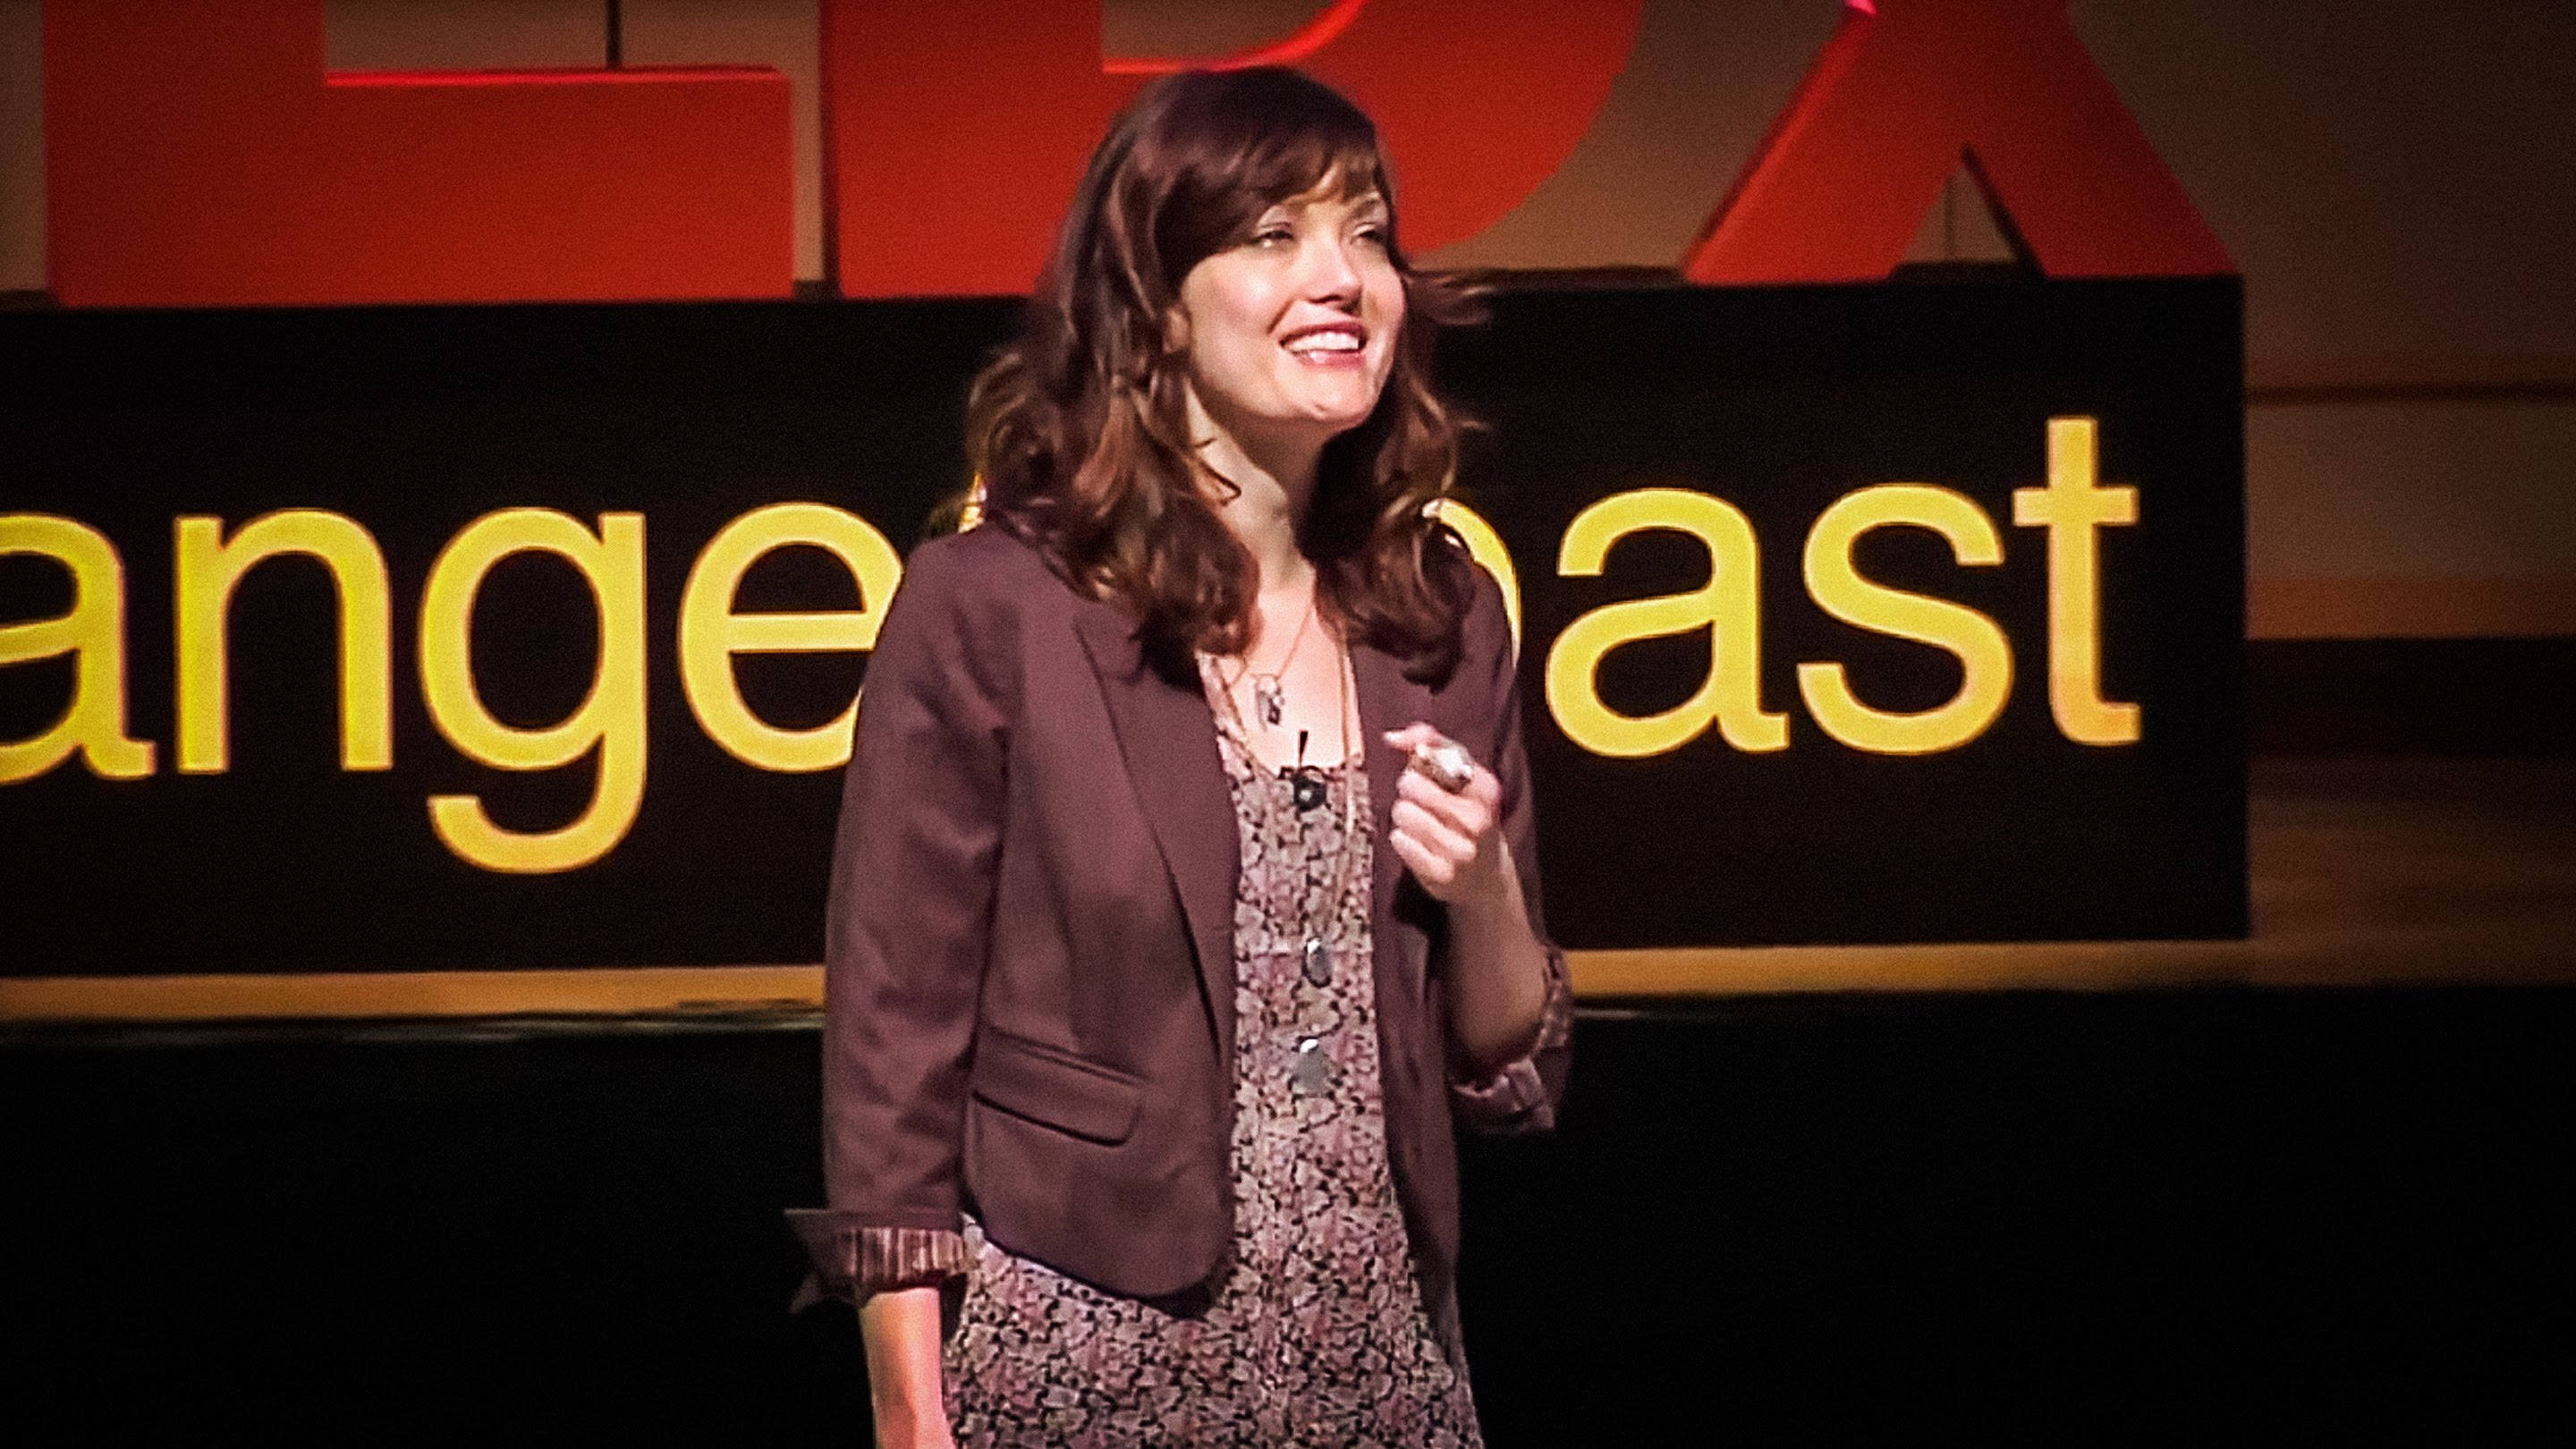 Amy Purdy's TED Talk: Living Beyond Limits